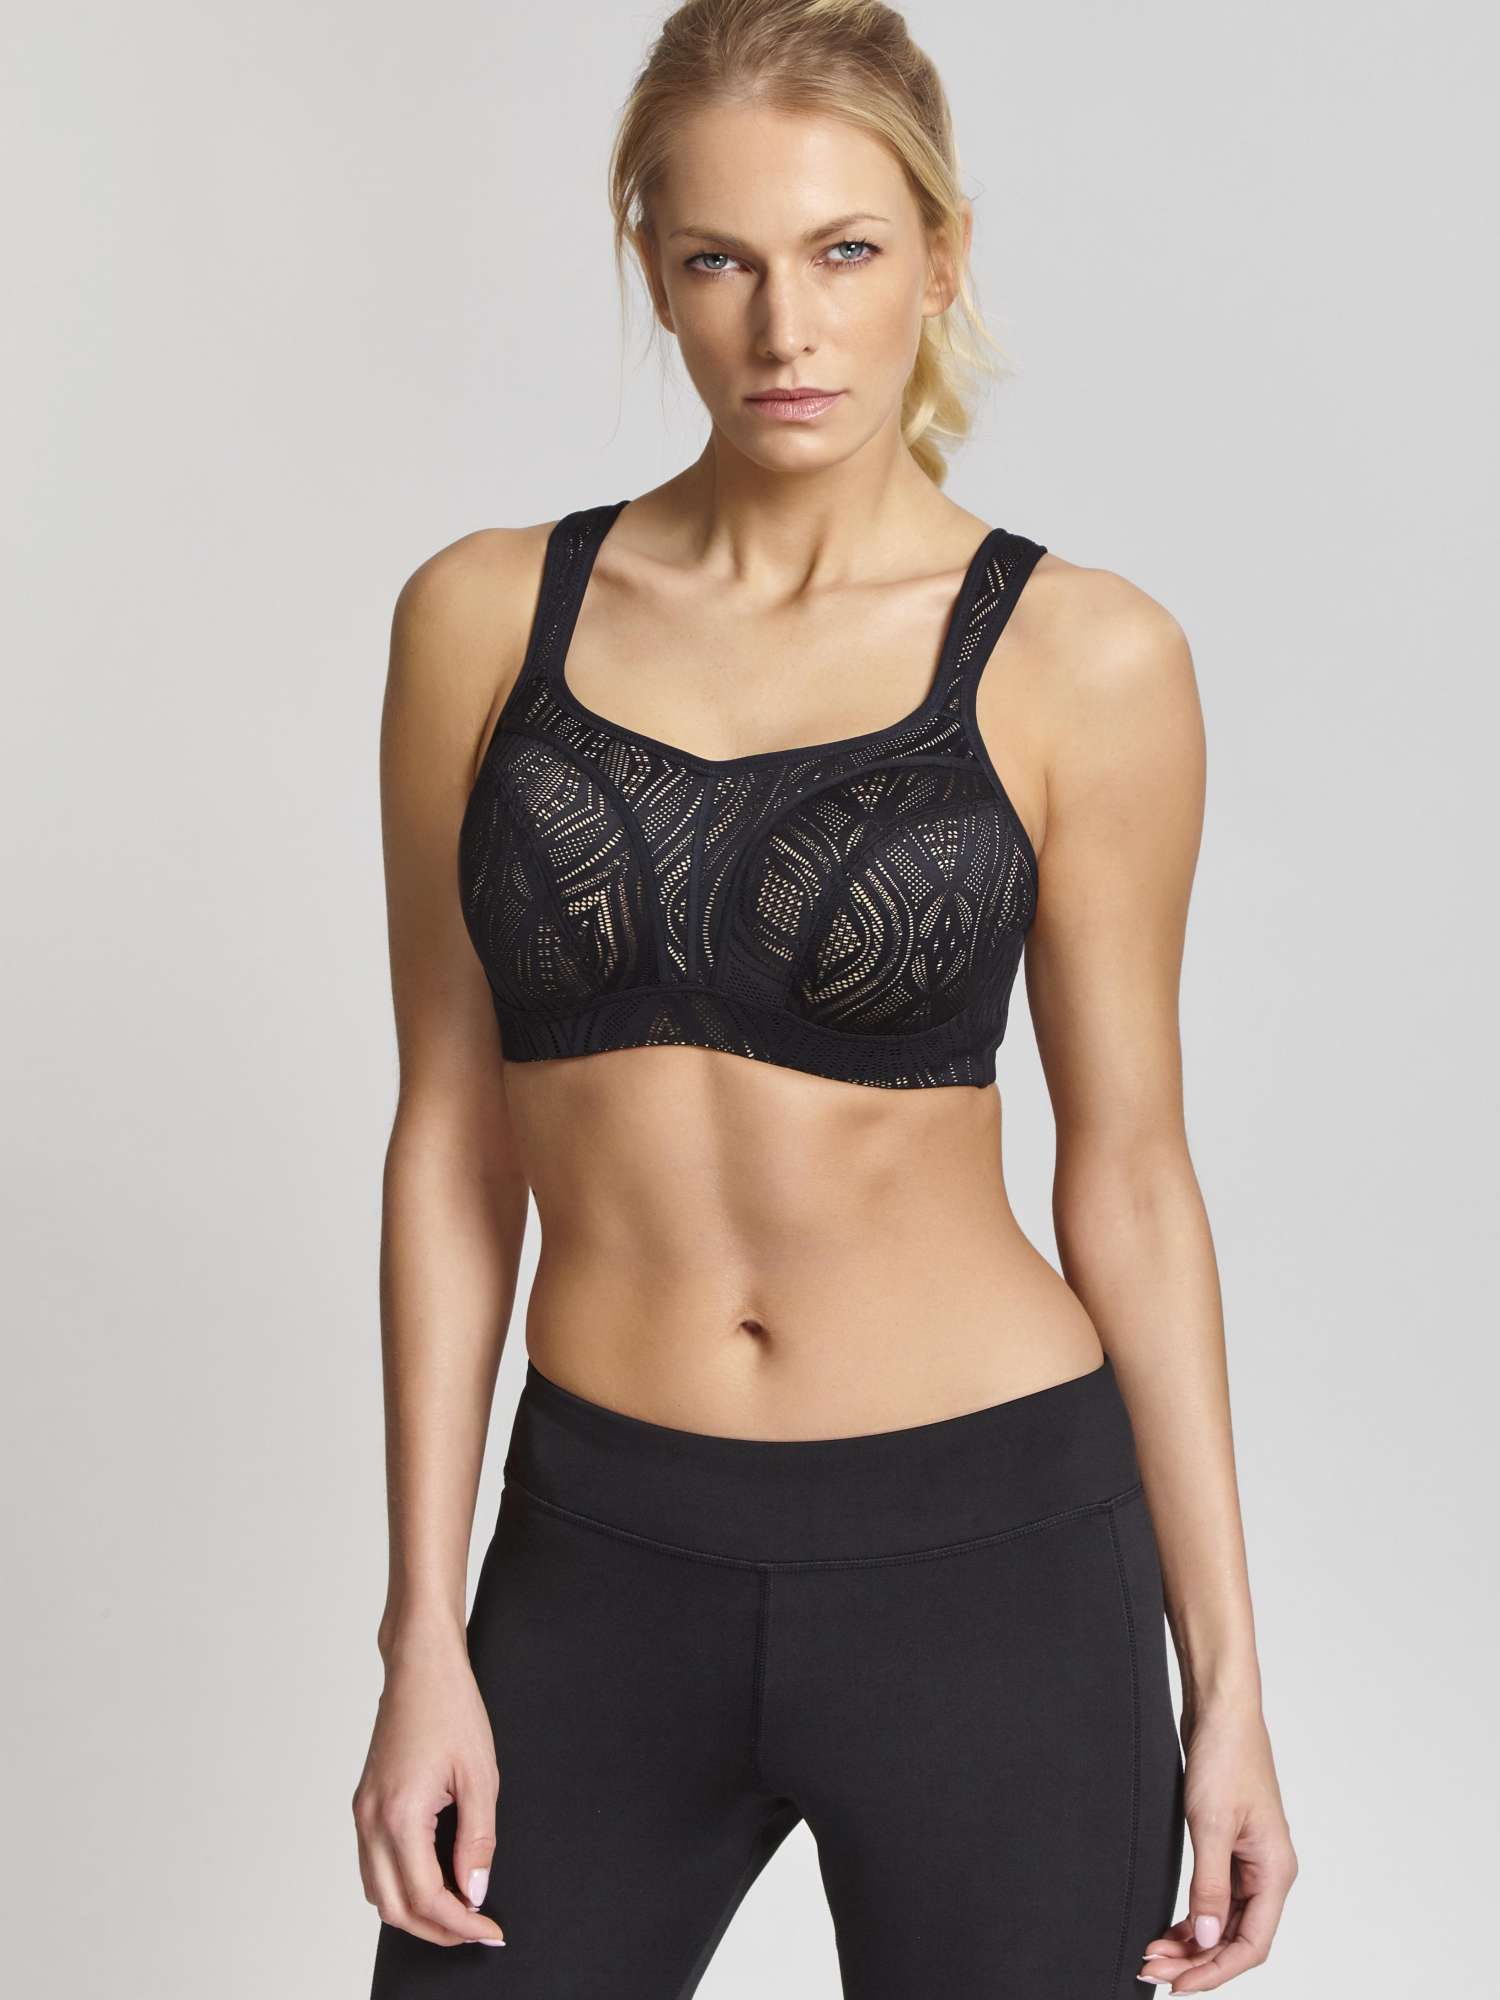 516cd2911a Sports Wired Bra - Panache Lingerie